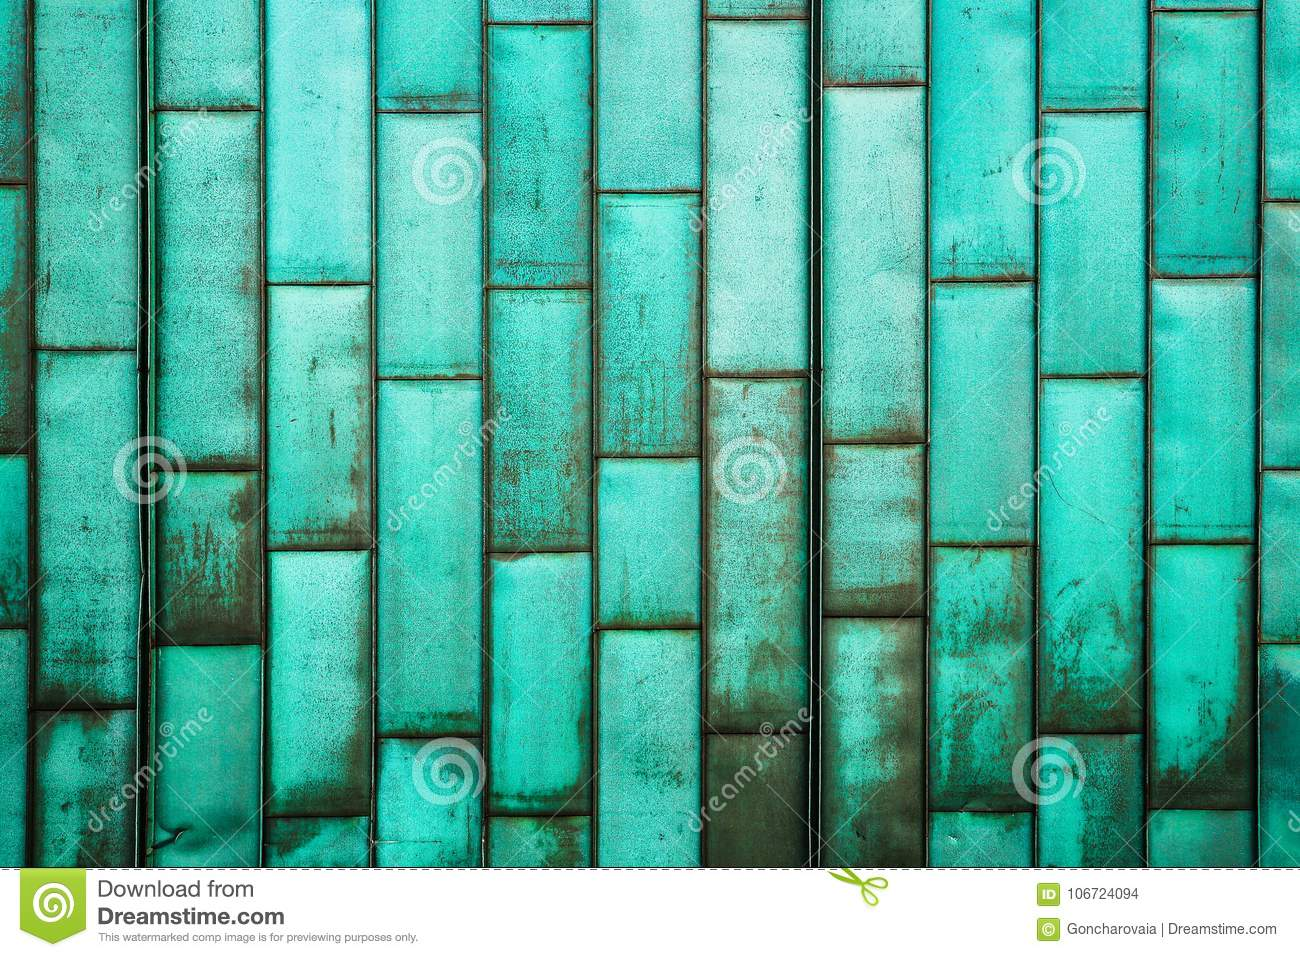 The Copper-green Sheathing Of The Building. Old Grunge Metal Tiles ...